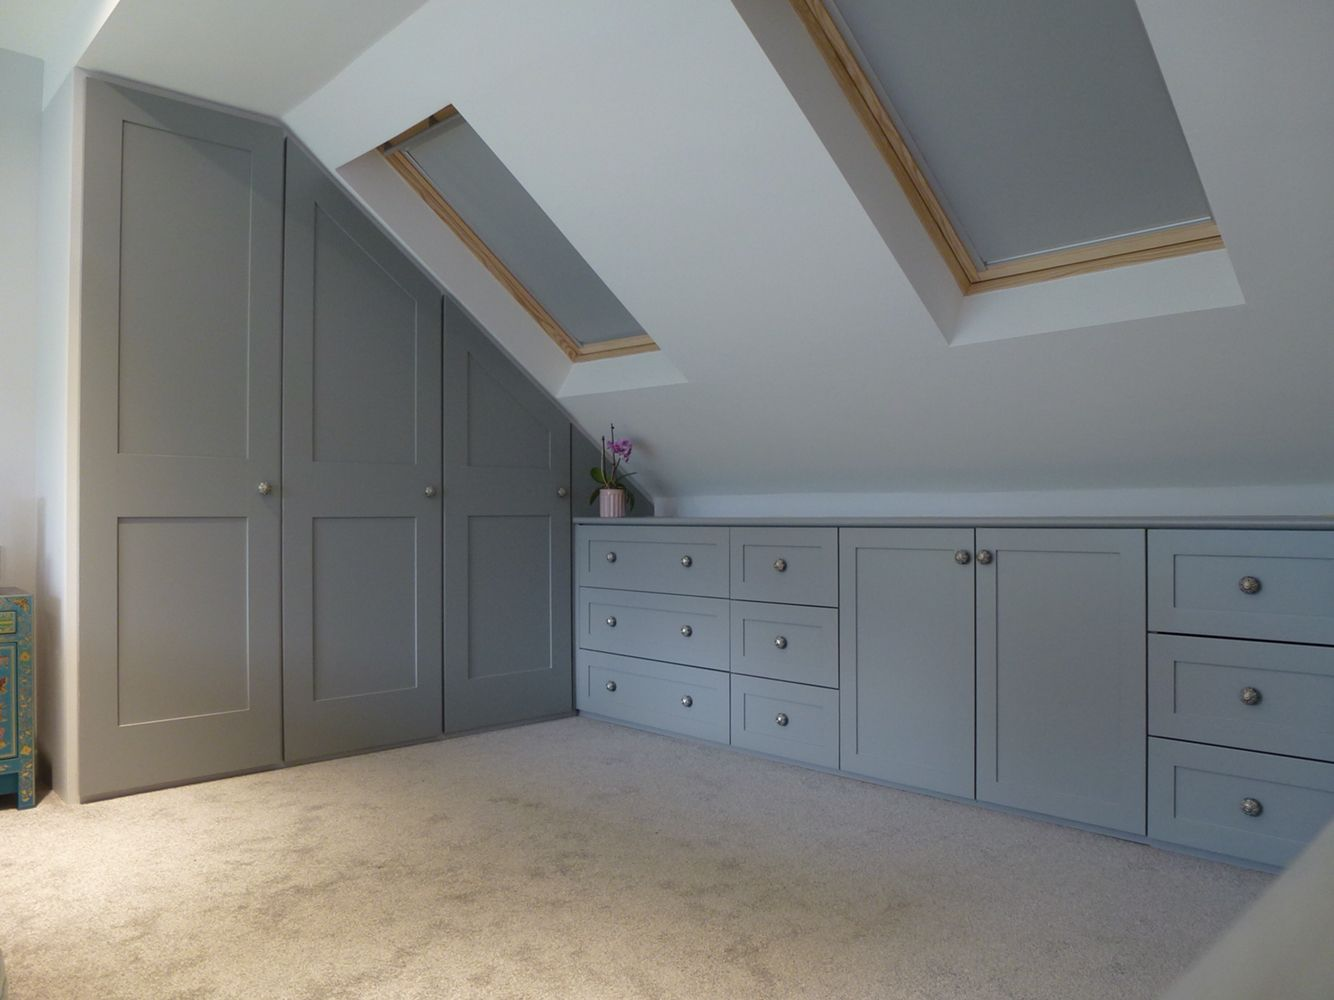 best ideas about eaves storage loft storage oxford carpenter to carry out all aspects of carpenry and joinery in oxford to design and make fitted wardrobes in oxford fitted storage cupboards in